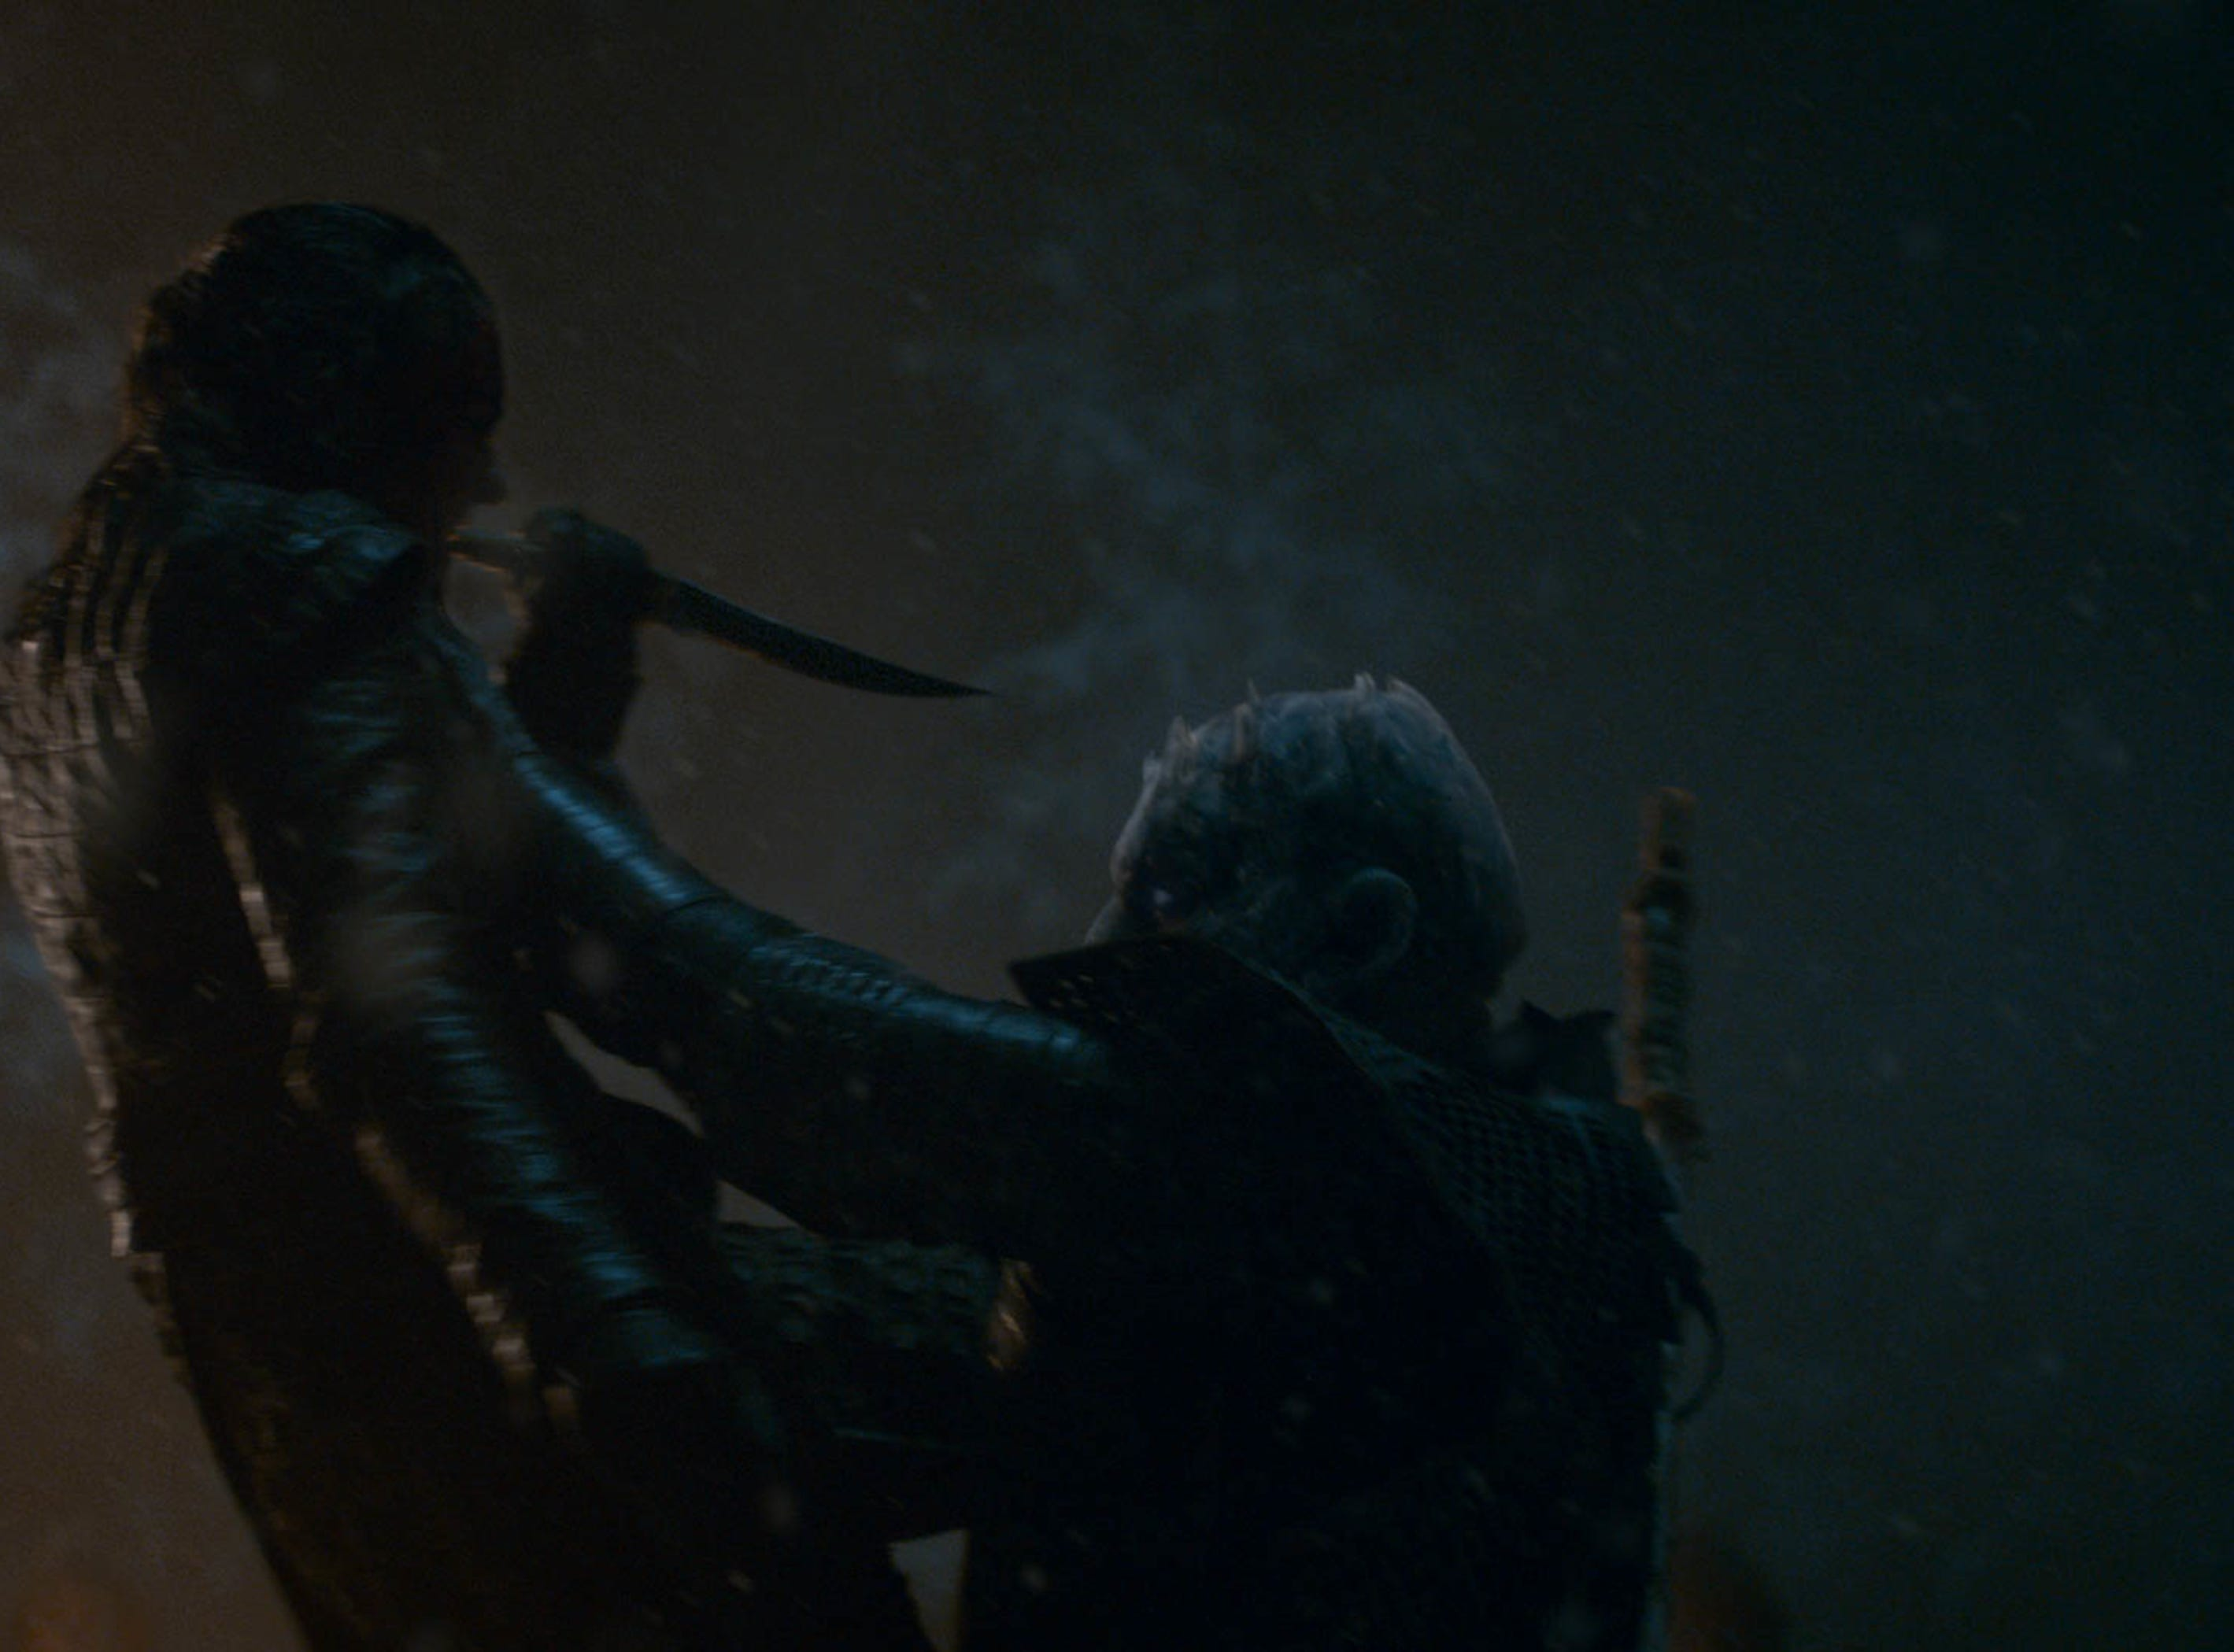 Arya Stark (Maisie Williams), left, makes the acquaintance of The Night King (Vladimir Furdik) in a pivotal scene from 'The Long Night' episode of 'Game of Thrones.'